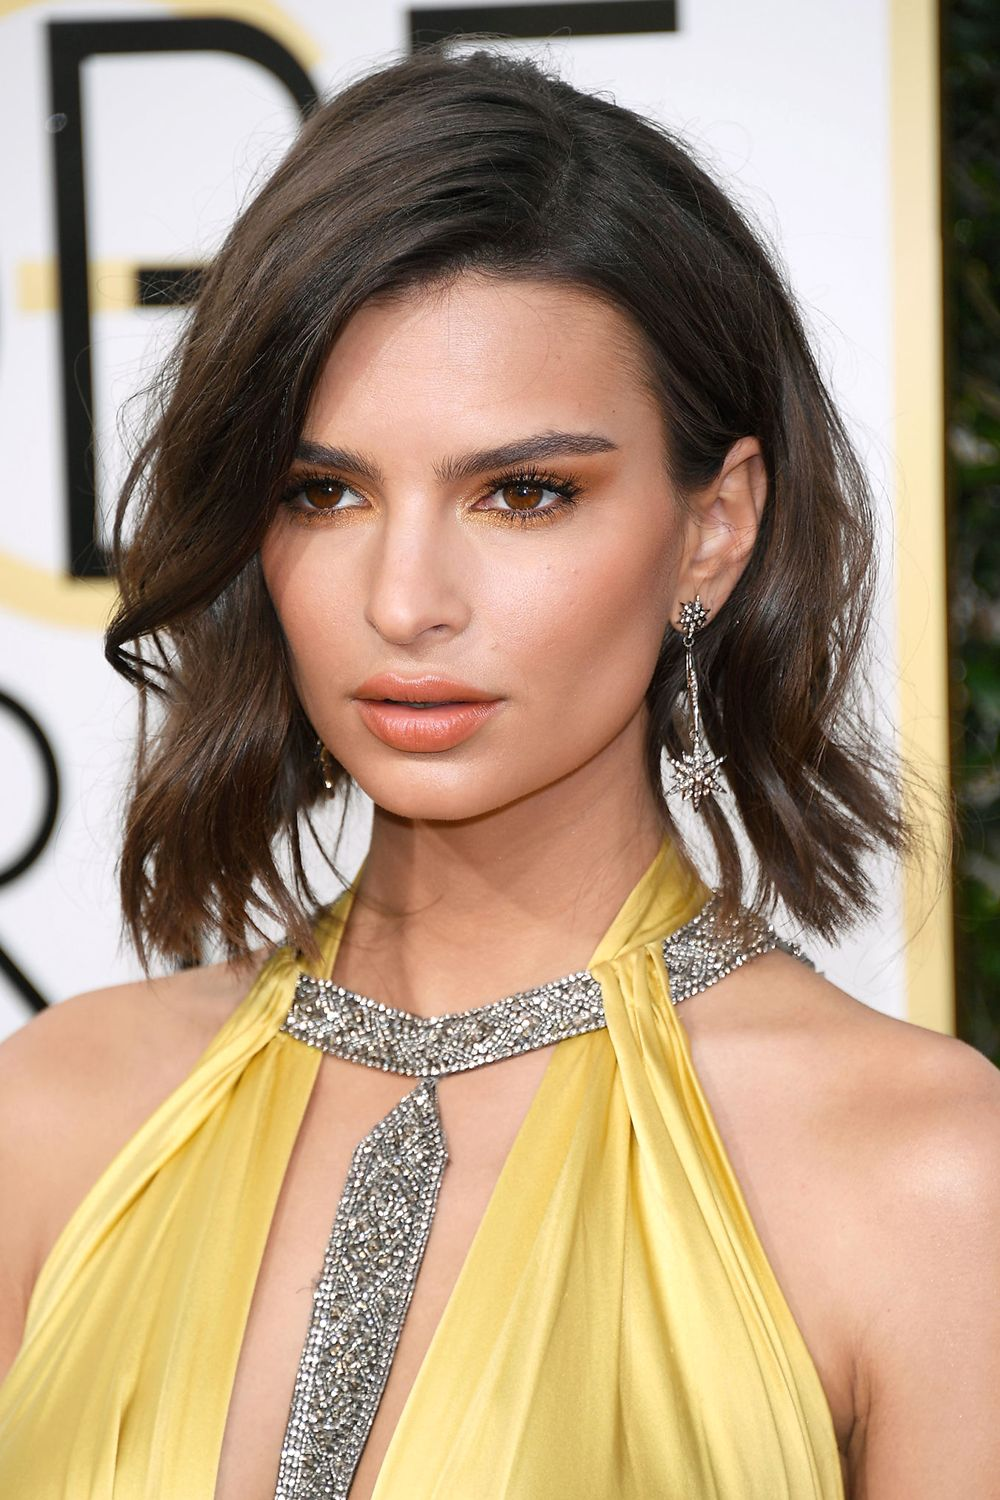 "<p><strong data-redactor-tag=""strong"" data-verified=""redactor"">As seen on:</strong> Emily Ratajkowski<span class=""redactor-invisible-space"" data-verified=""redactor"" data-redactor-tag=""span"" data-redactor-class=""redactor-invisible-space""></span></p>"